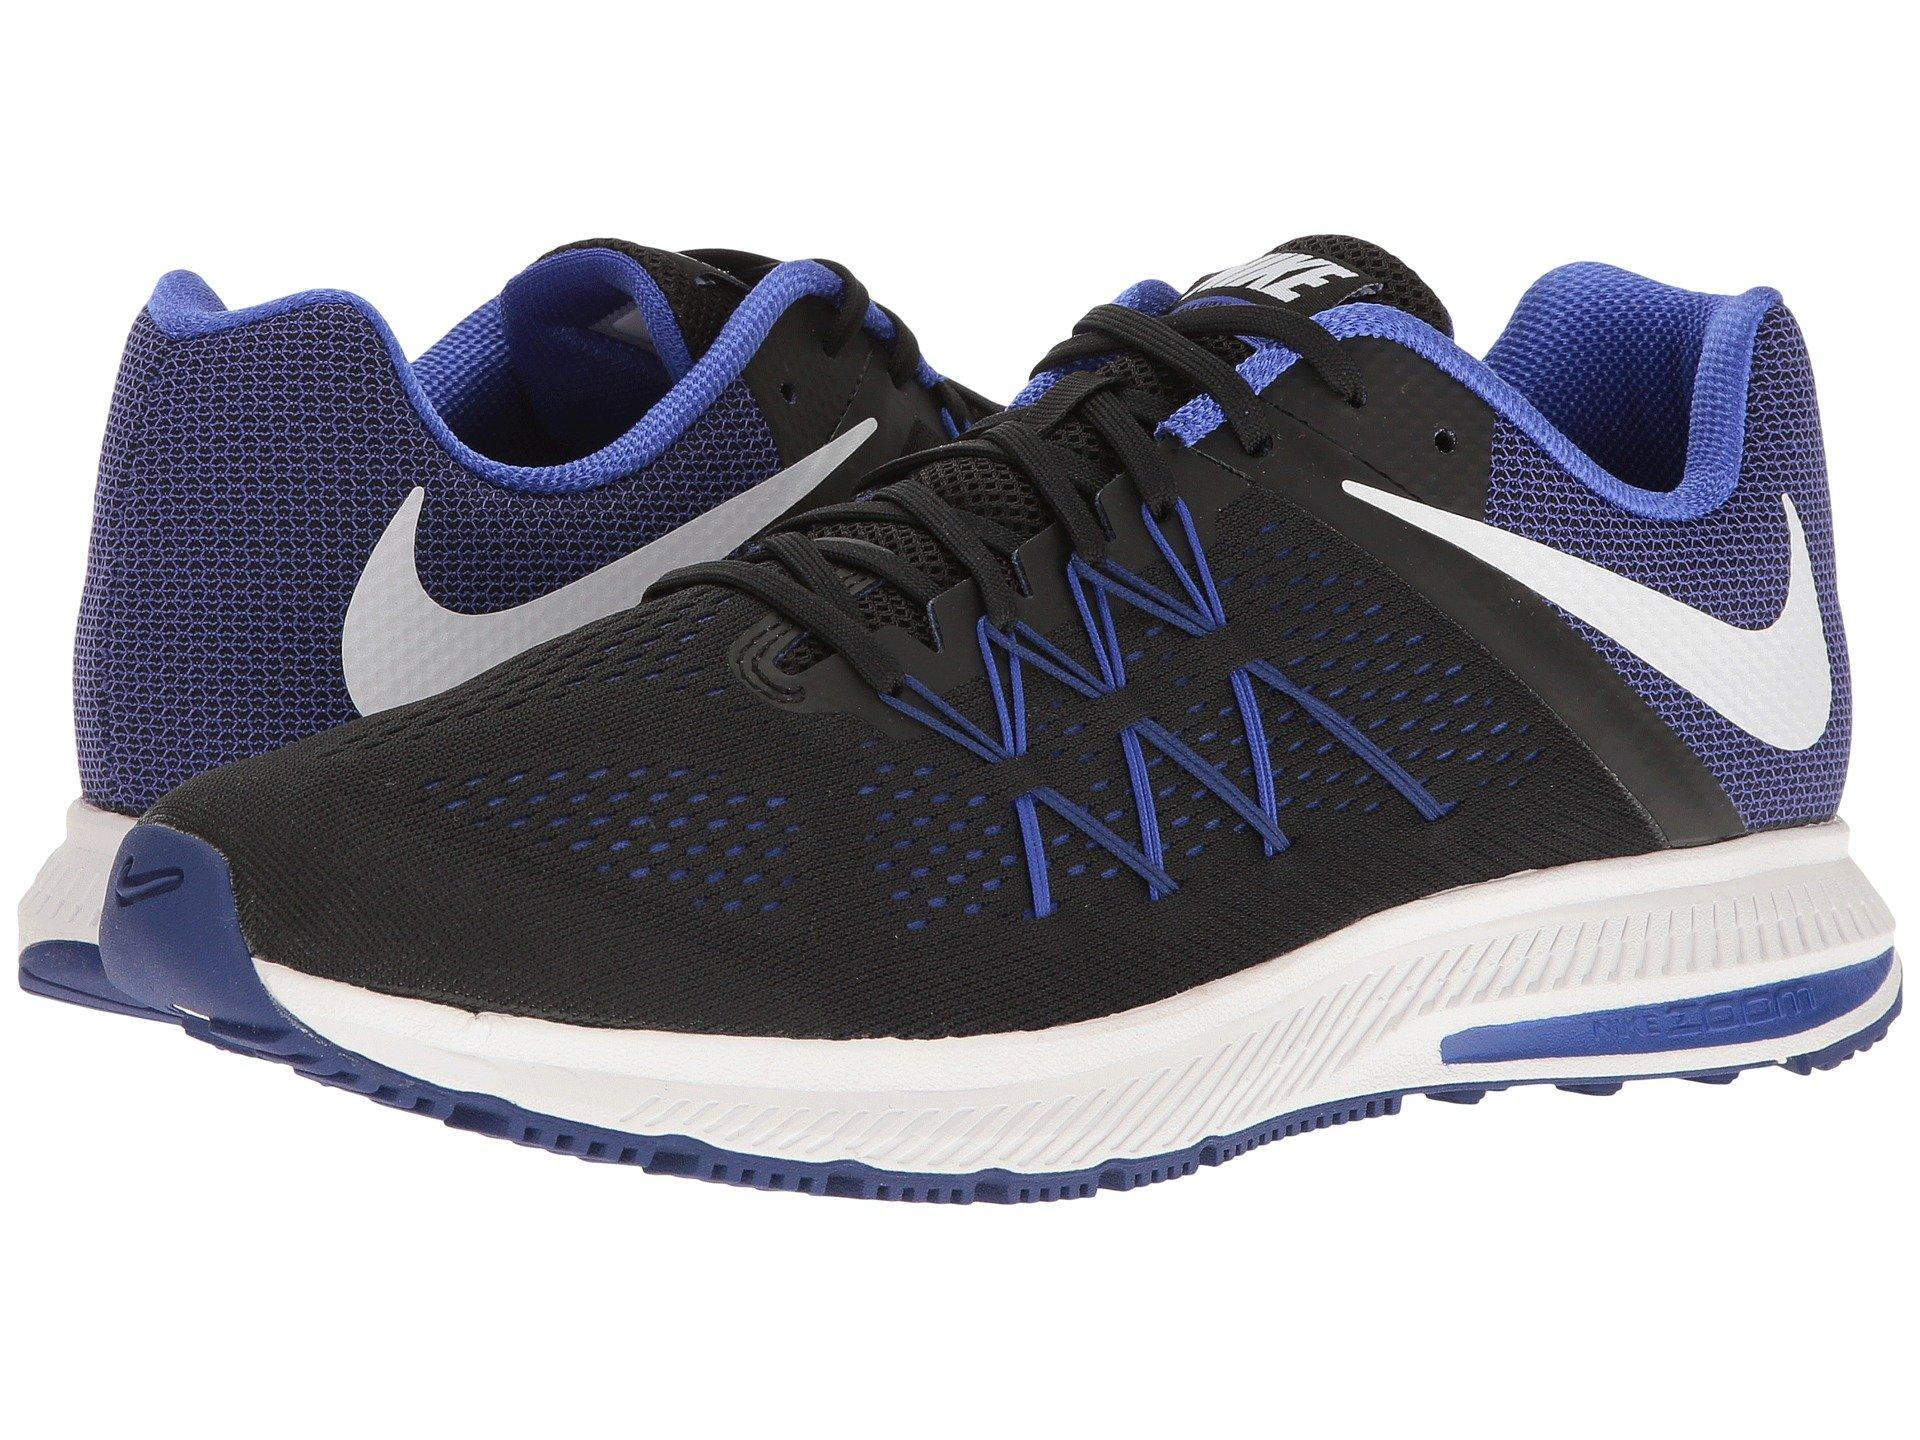 quality design c01b5 a5aef Nike Zoom Winflo 3 In Black White Paramount Blue